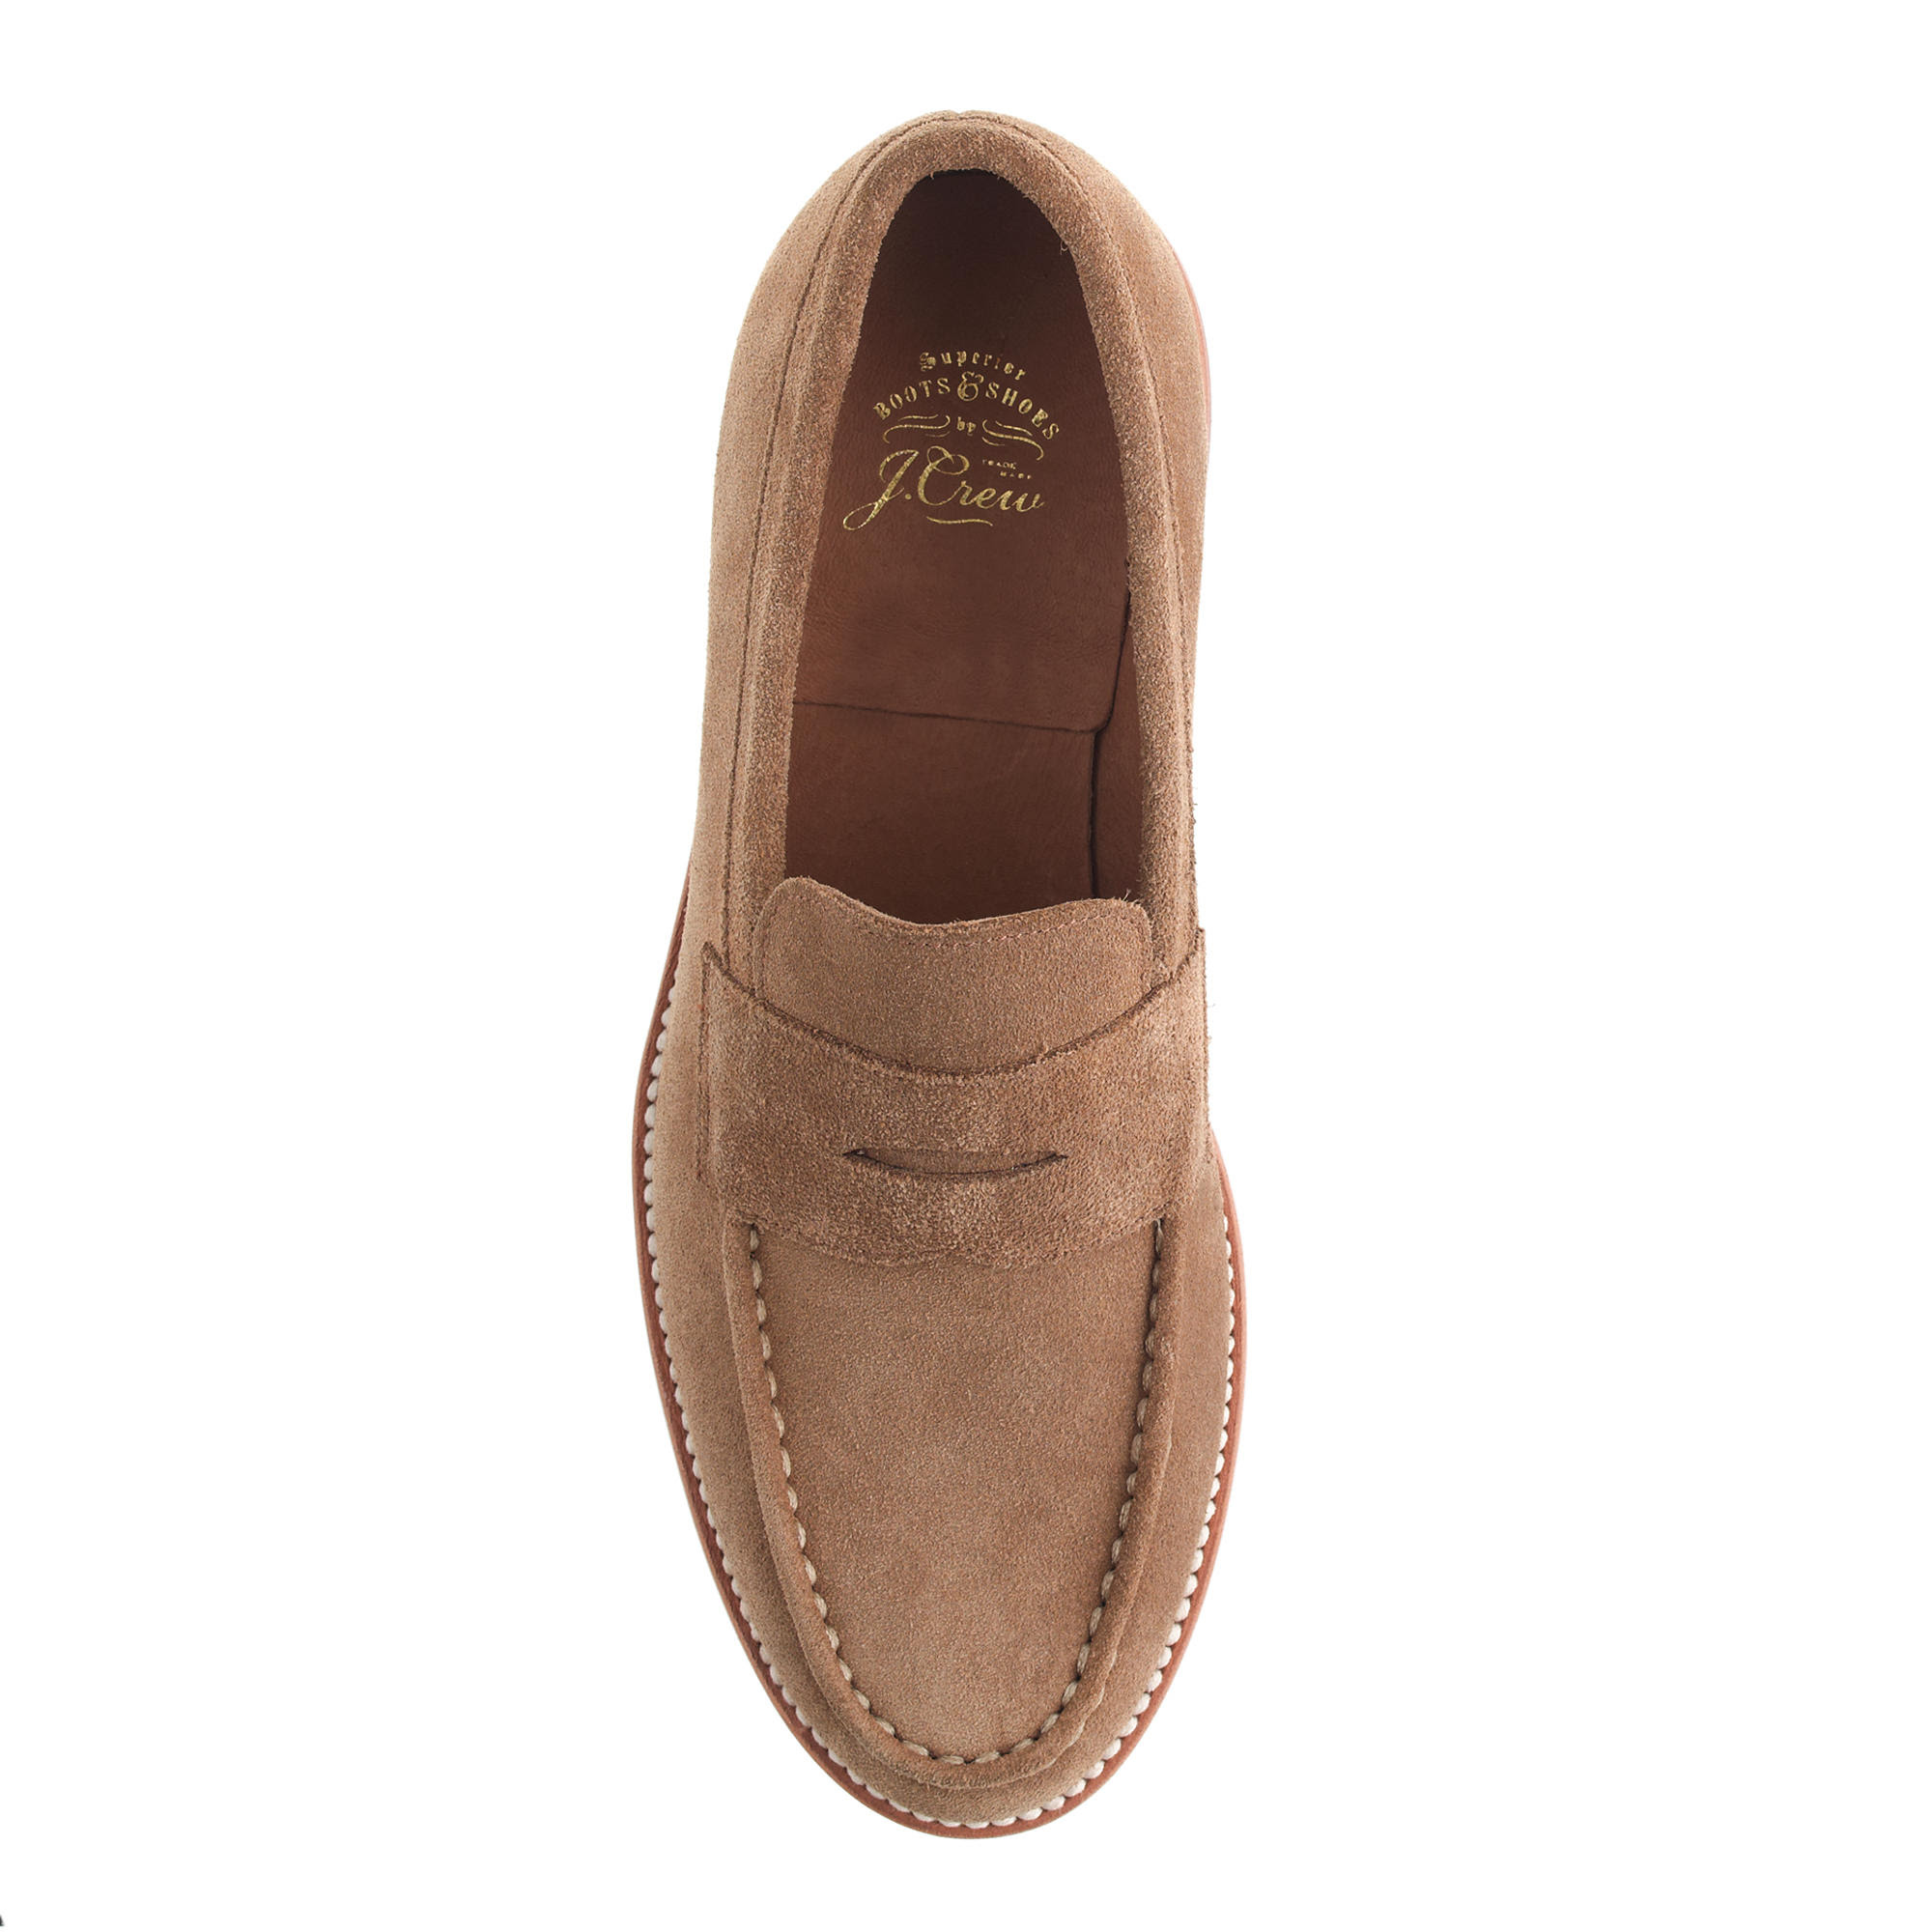 J.crew Kenton Suede Penny Loafers in Brown for Men (sahara ...